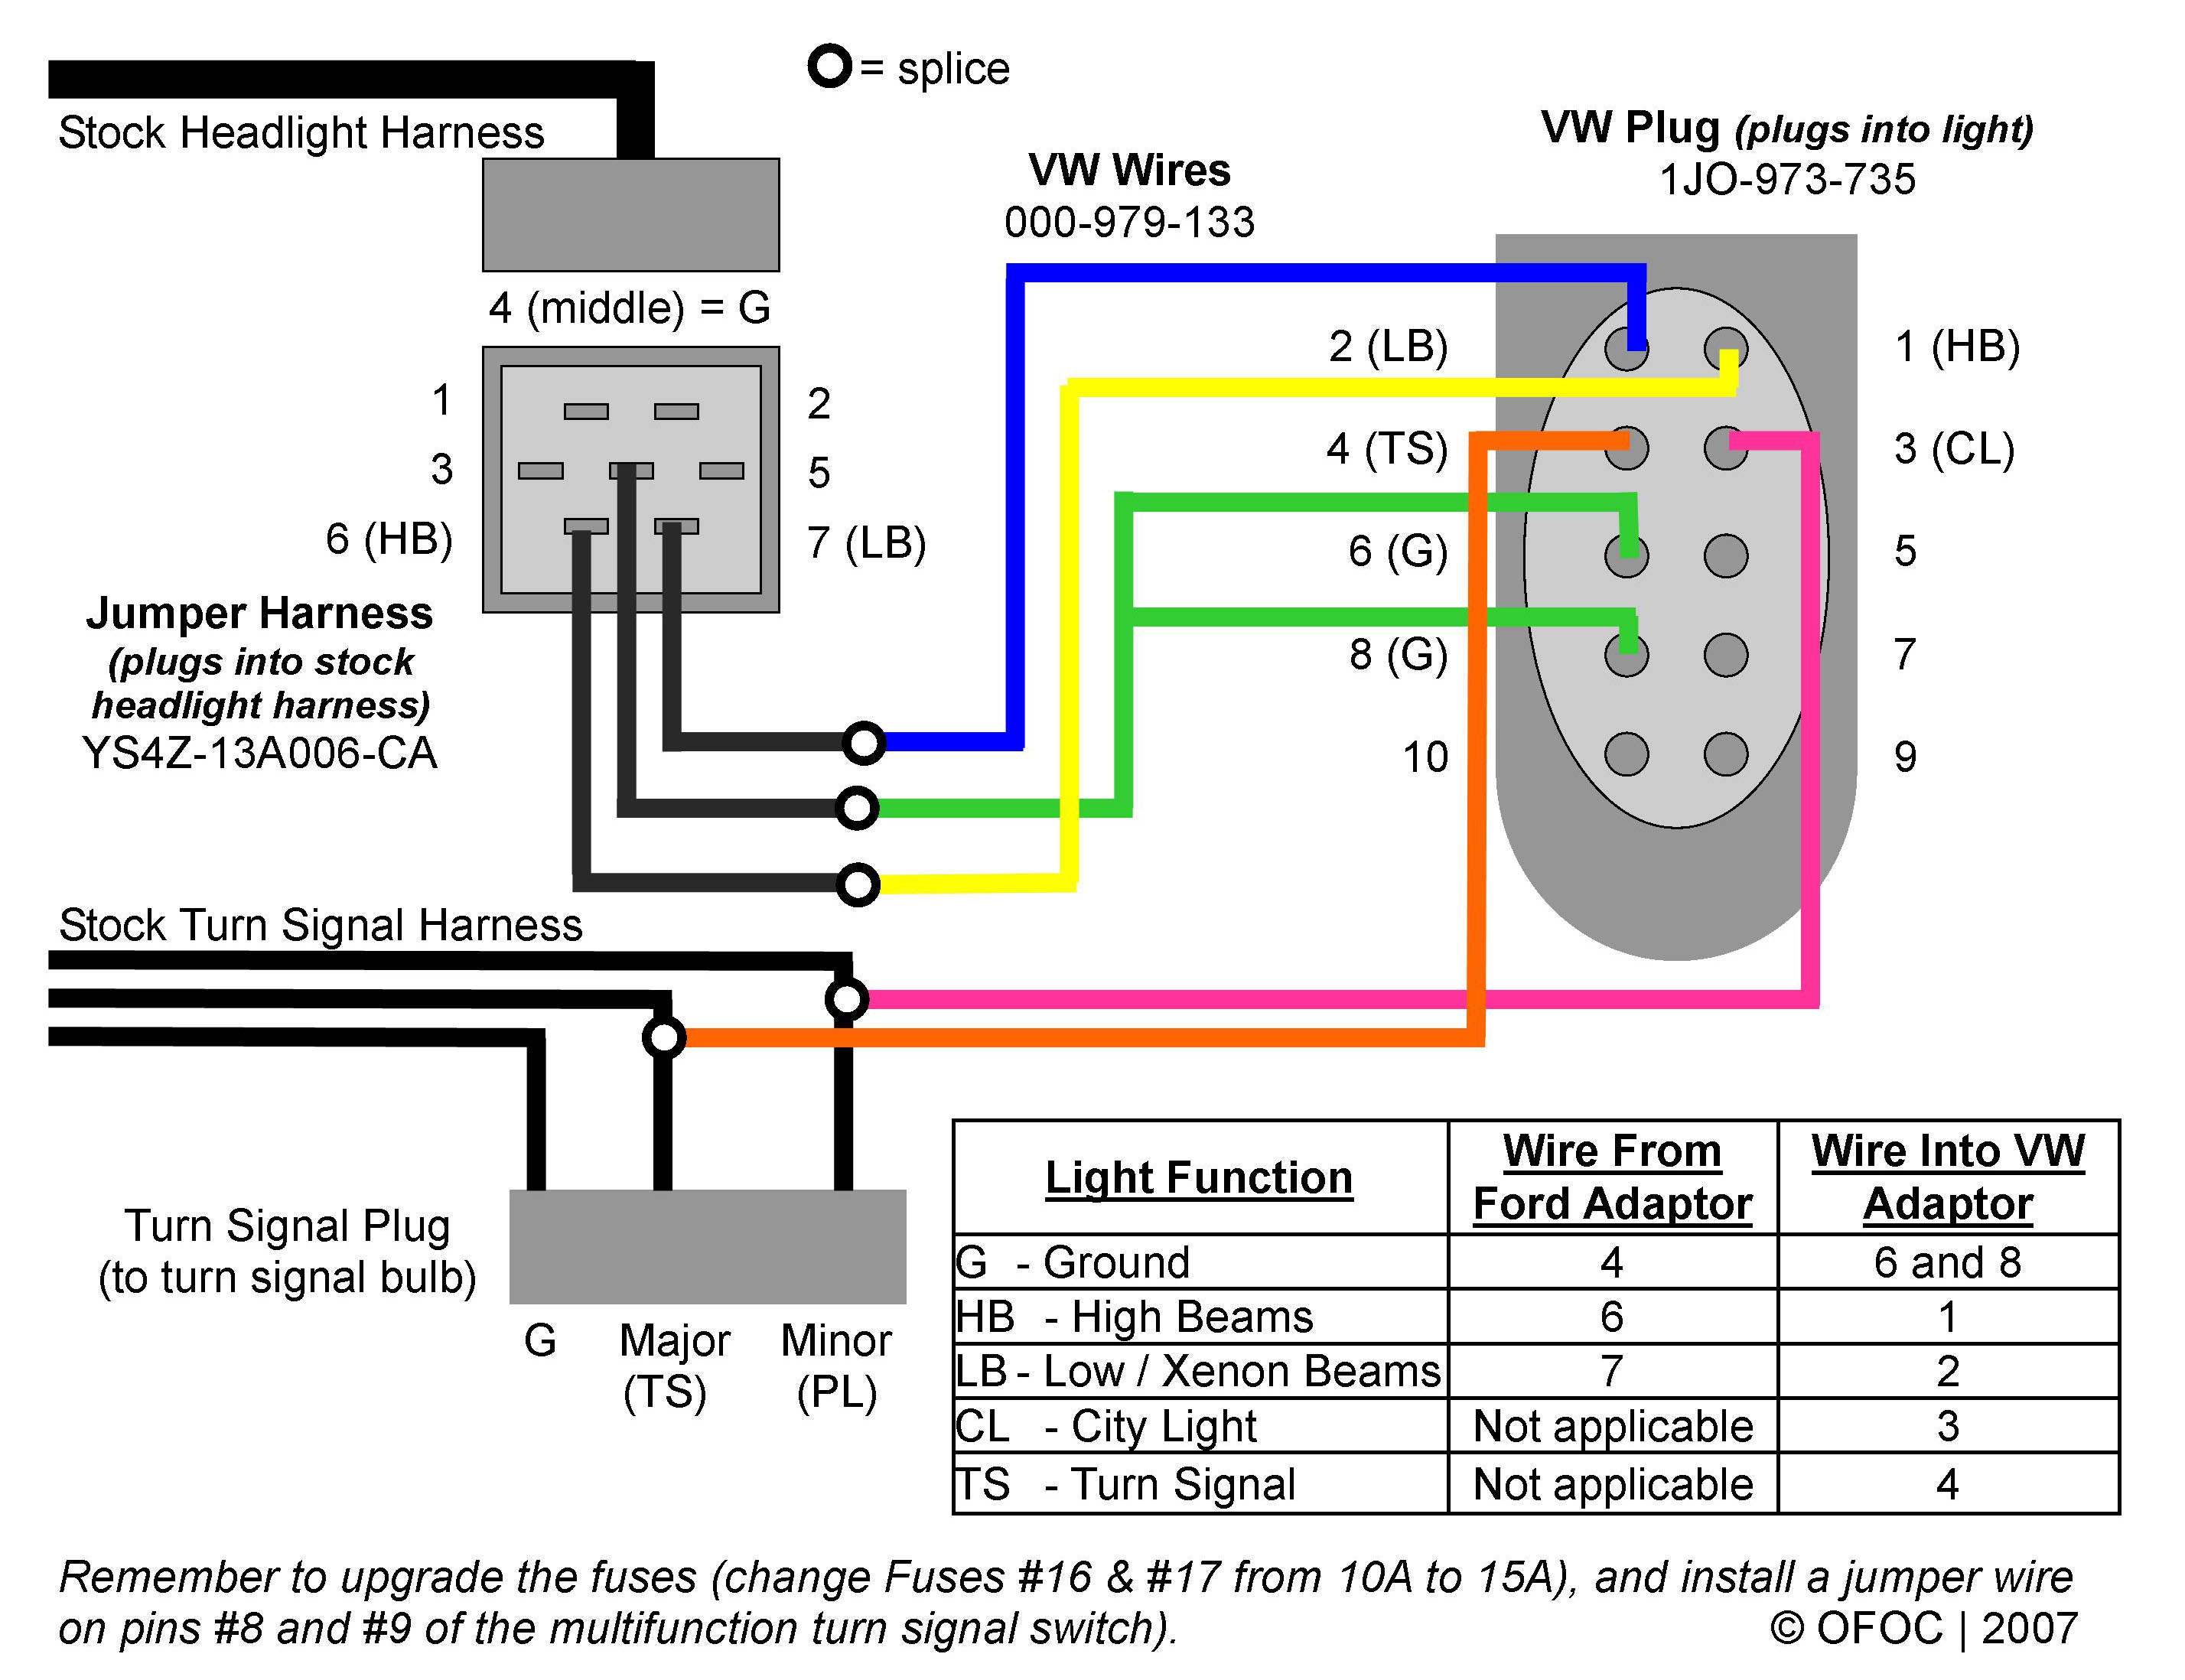 wiringschematic how to vw wiring hack (convert your car to euro mach headlights 3 Wire Headlight Wiring Diagram at honlapkeszites.co